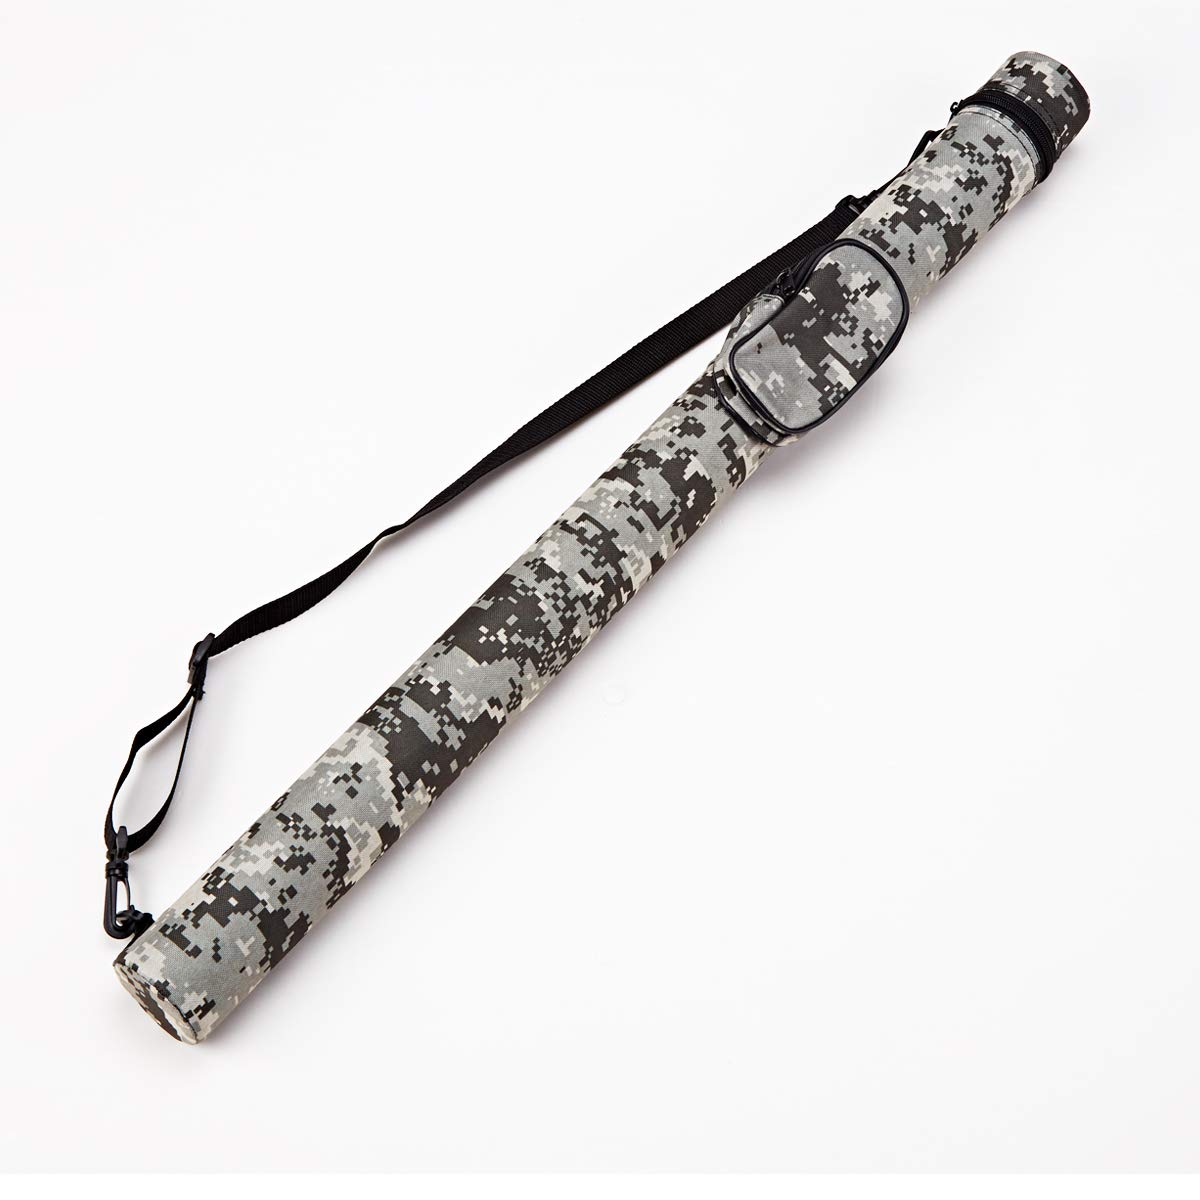 1B1S Camo Nylon Cases (Available in 5 Colors) Collapsar 1x1 Hard Pool Cue Billiard Stick Camo Carrying Case